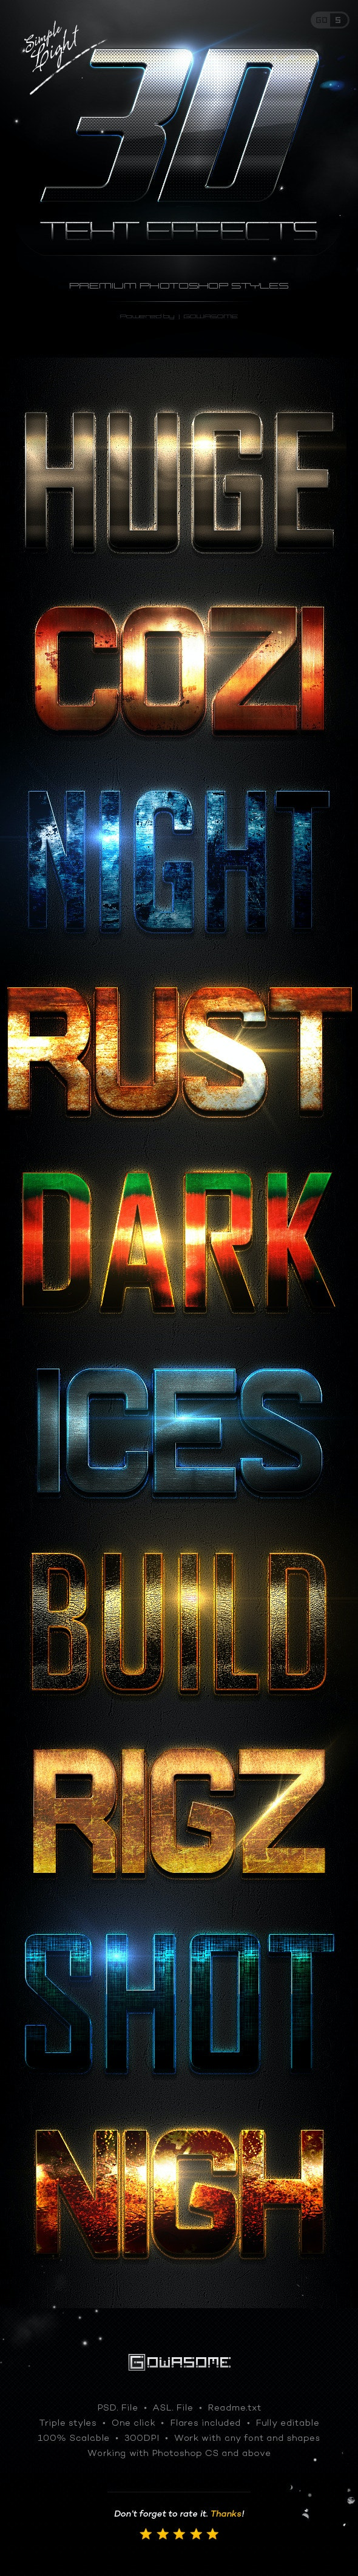 Simple 3D Light Text Effects GO.5 - Text Effects Styles